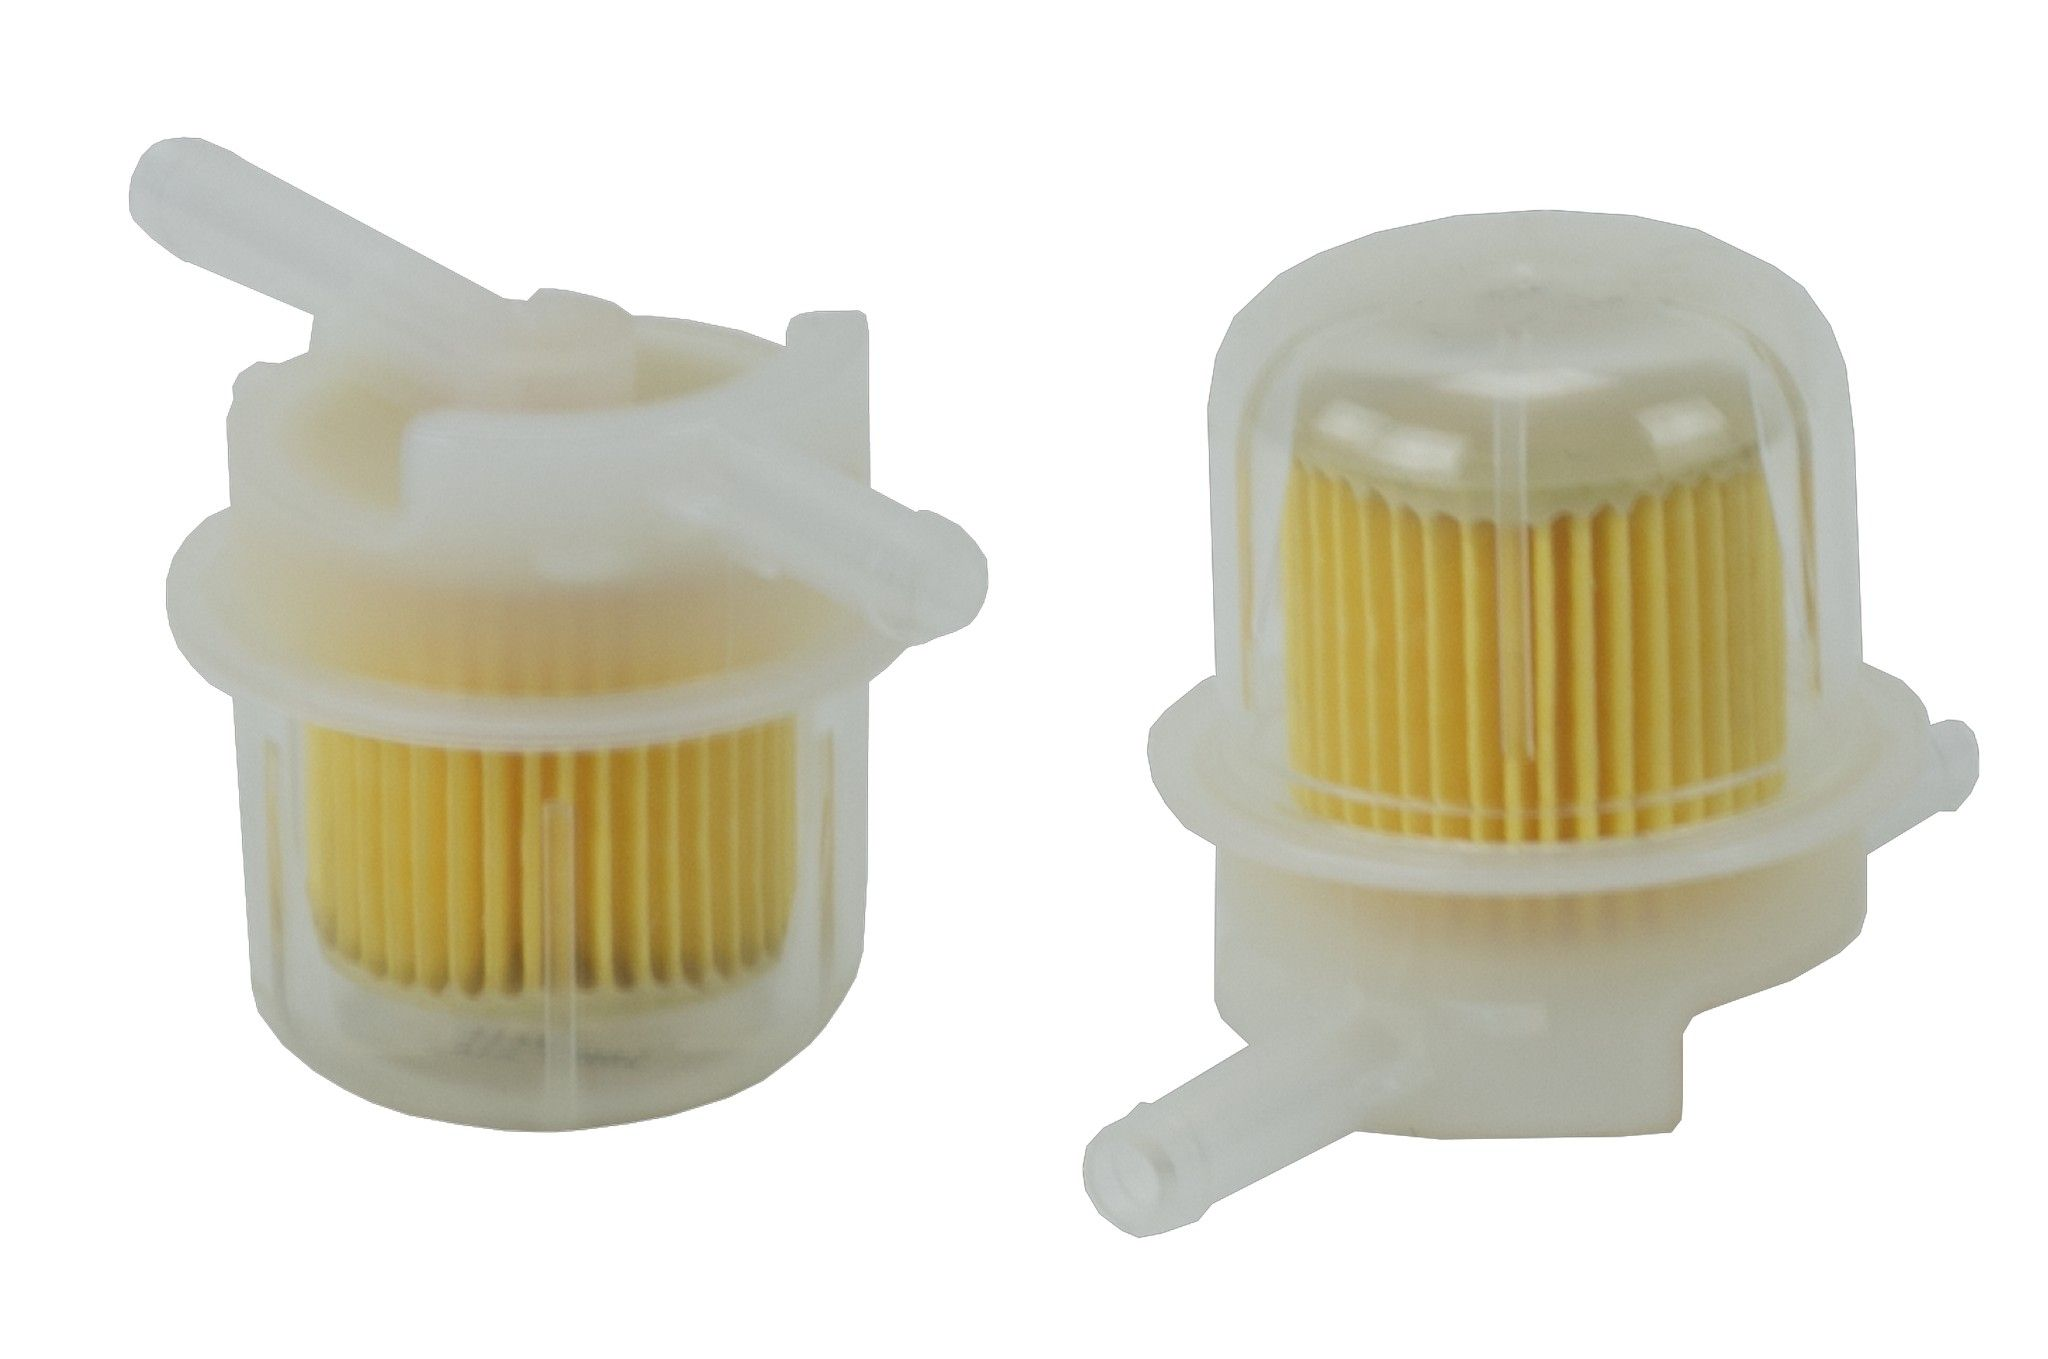 Honda Accord Fuel Filter Replacement Beck Arnley Fram Hastings 1982 Primary 4 Cyl 18l Wix 33204